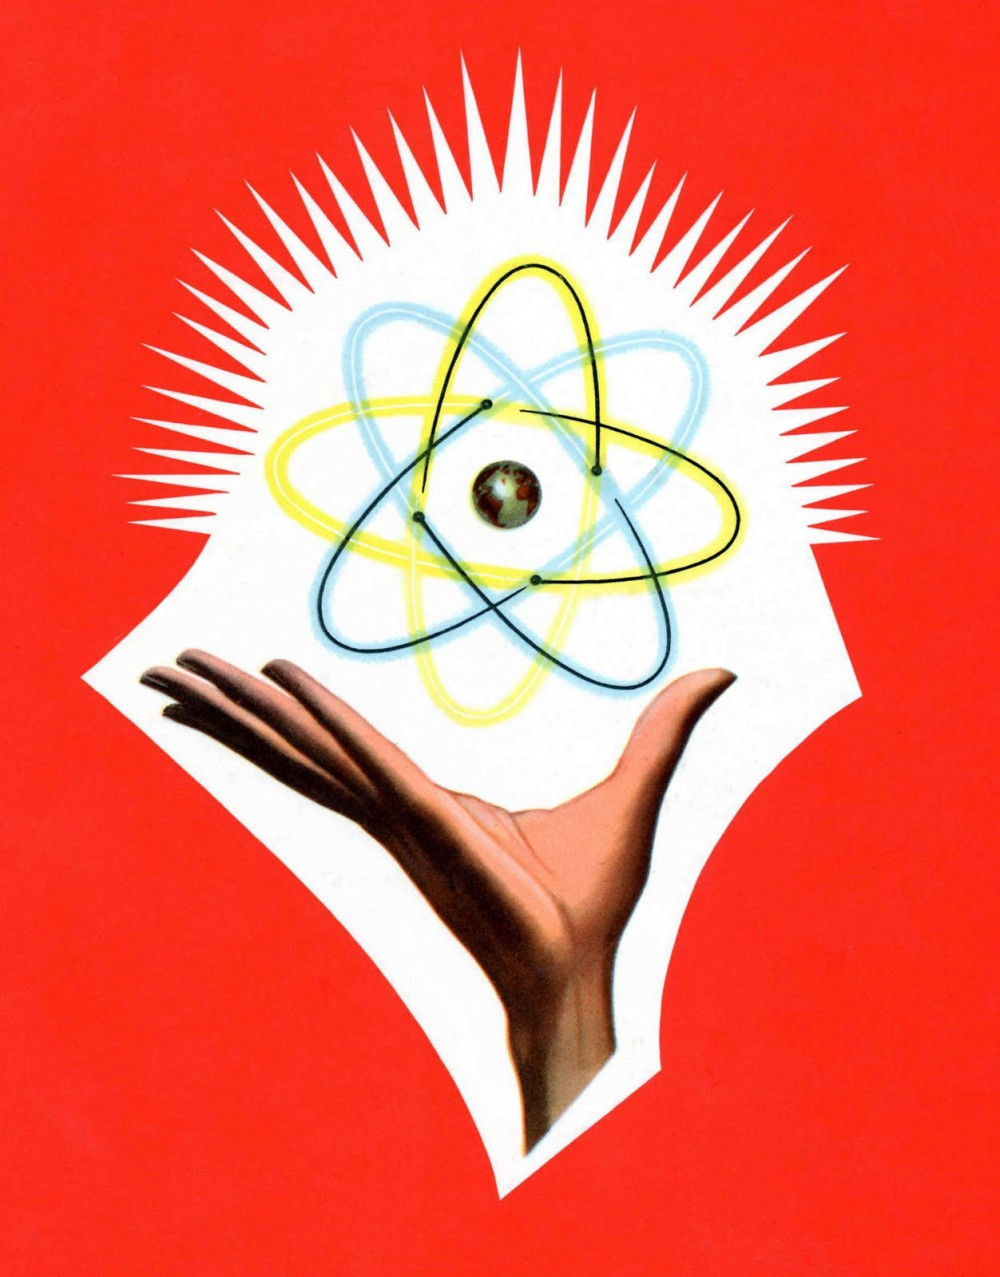 Our Friend the Atom – Part 1